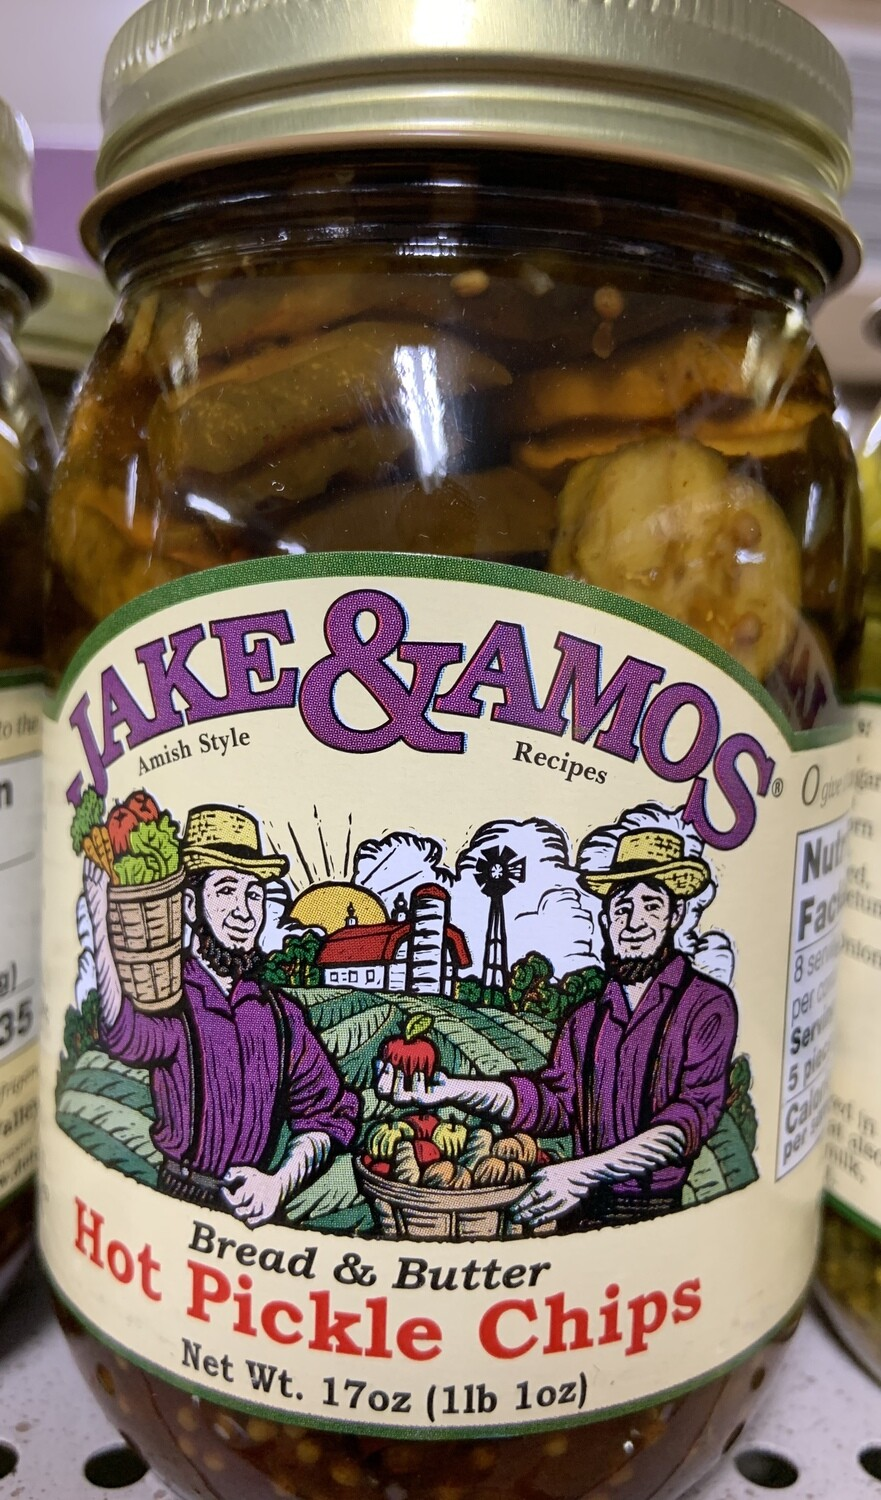 Jake & Amos Bread & Butter Hot Pickle Chips 16 oz